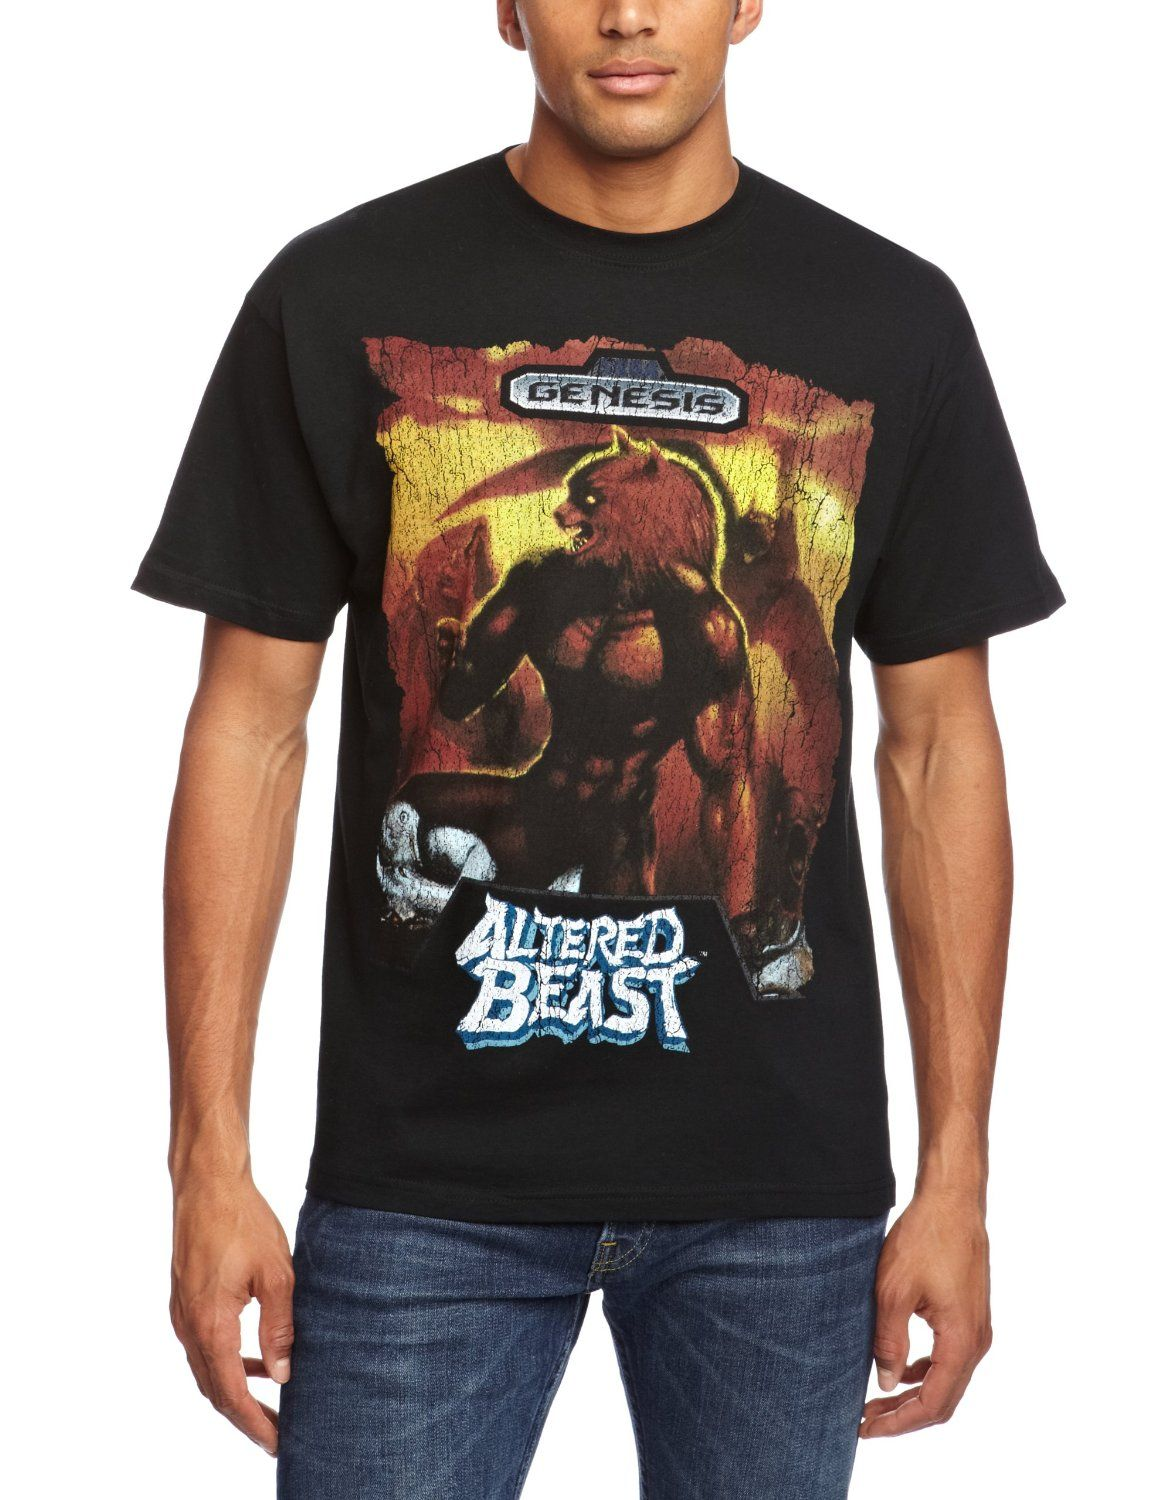 Plastic Head Sega Altered Beast Men's T-Shirt Black Small